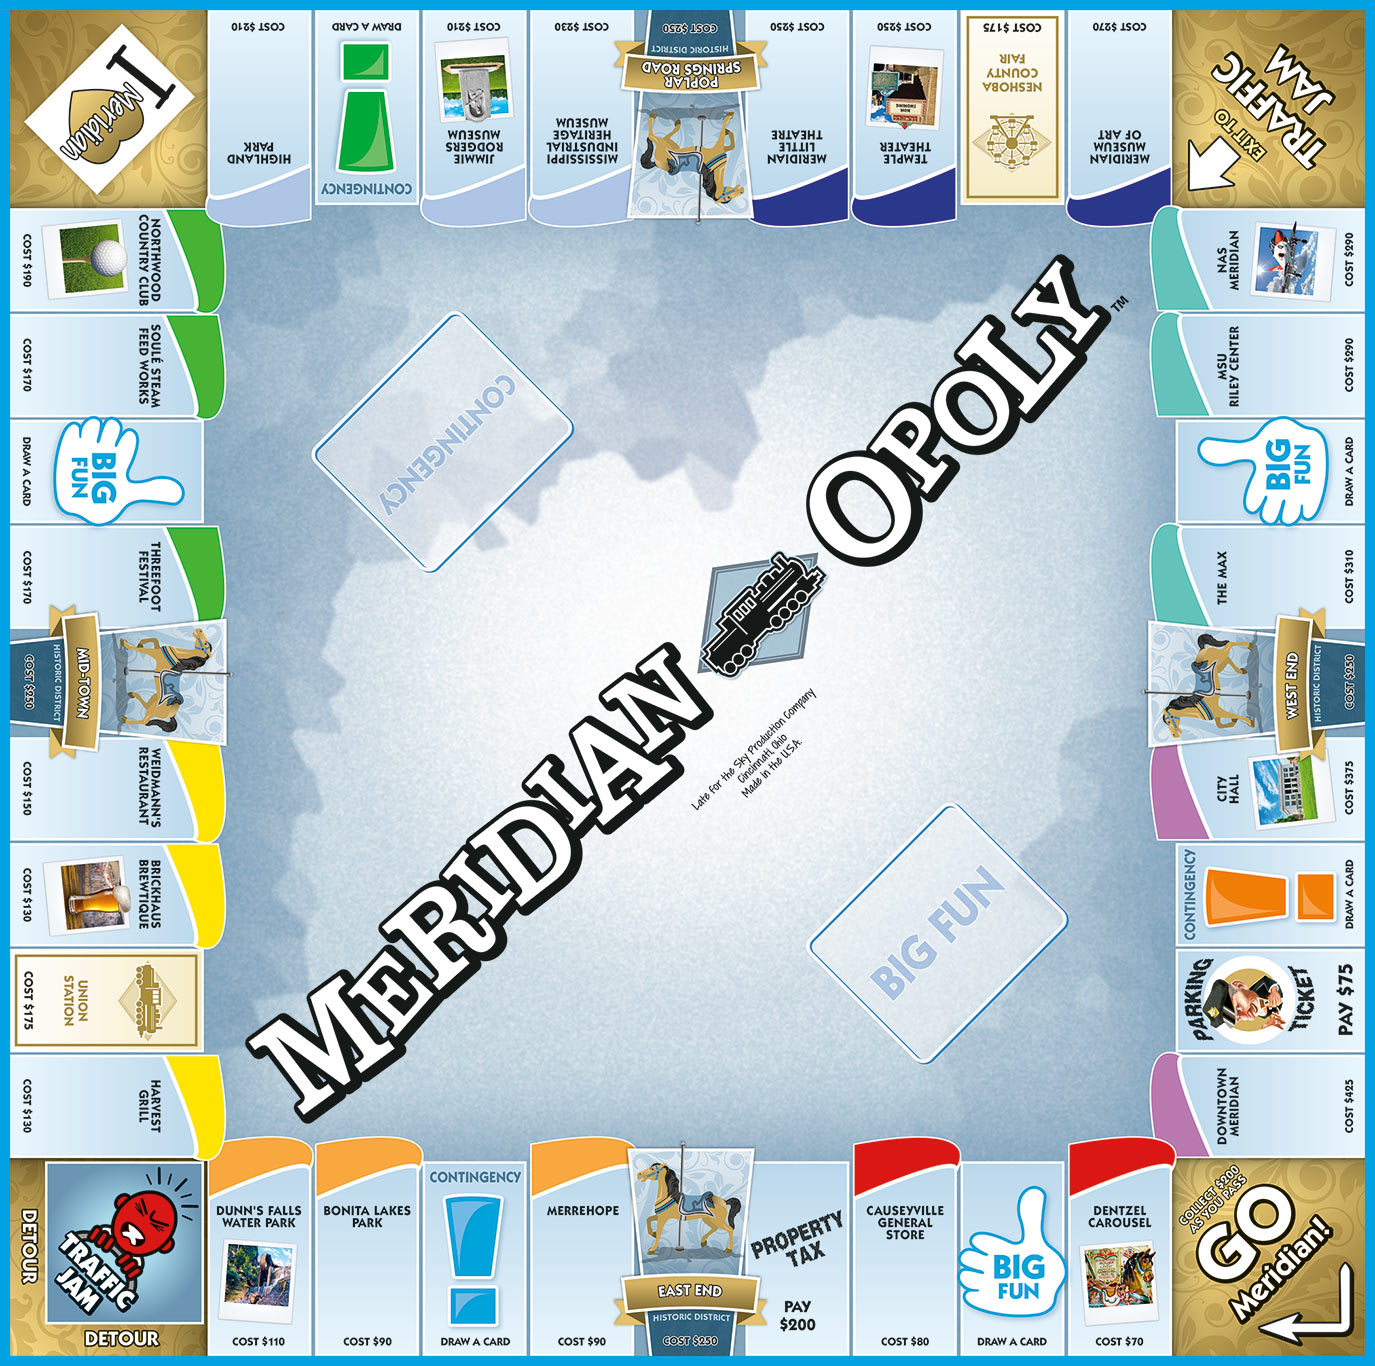 MERIDIAN-OPOLY Board Game